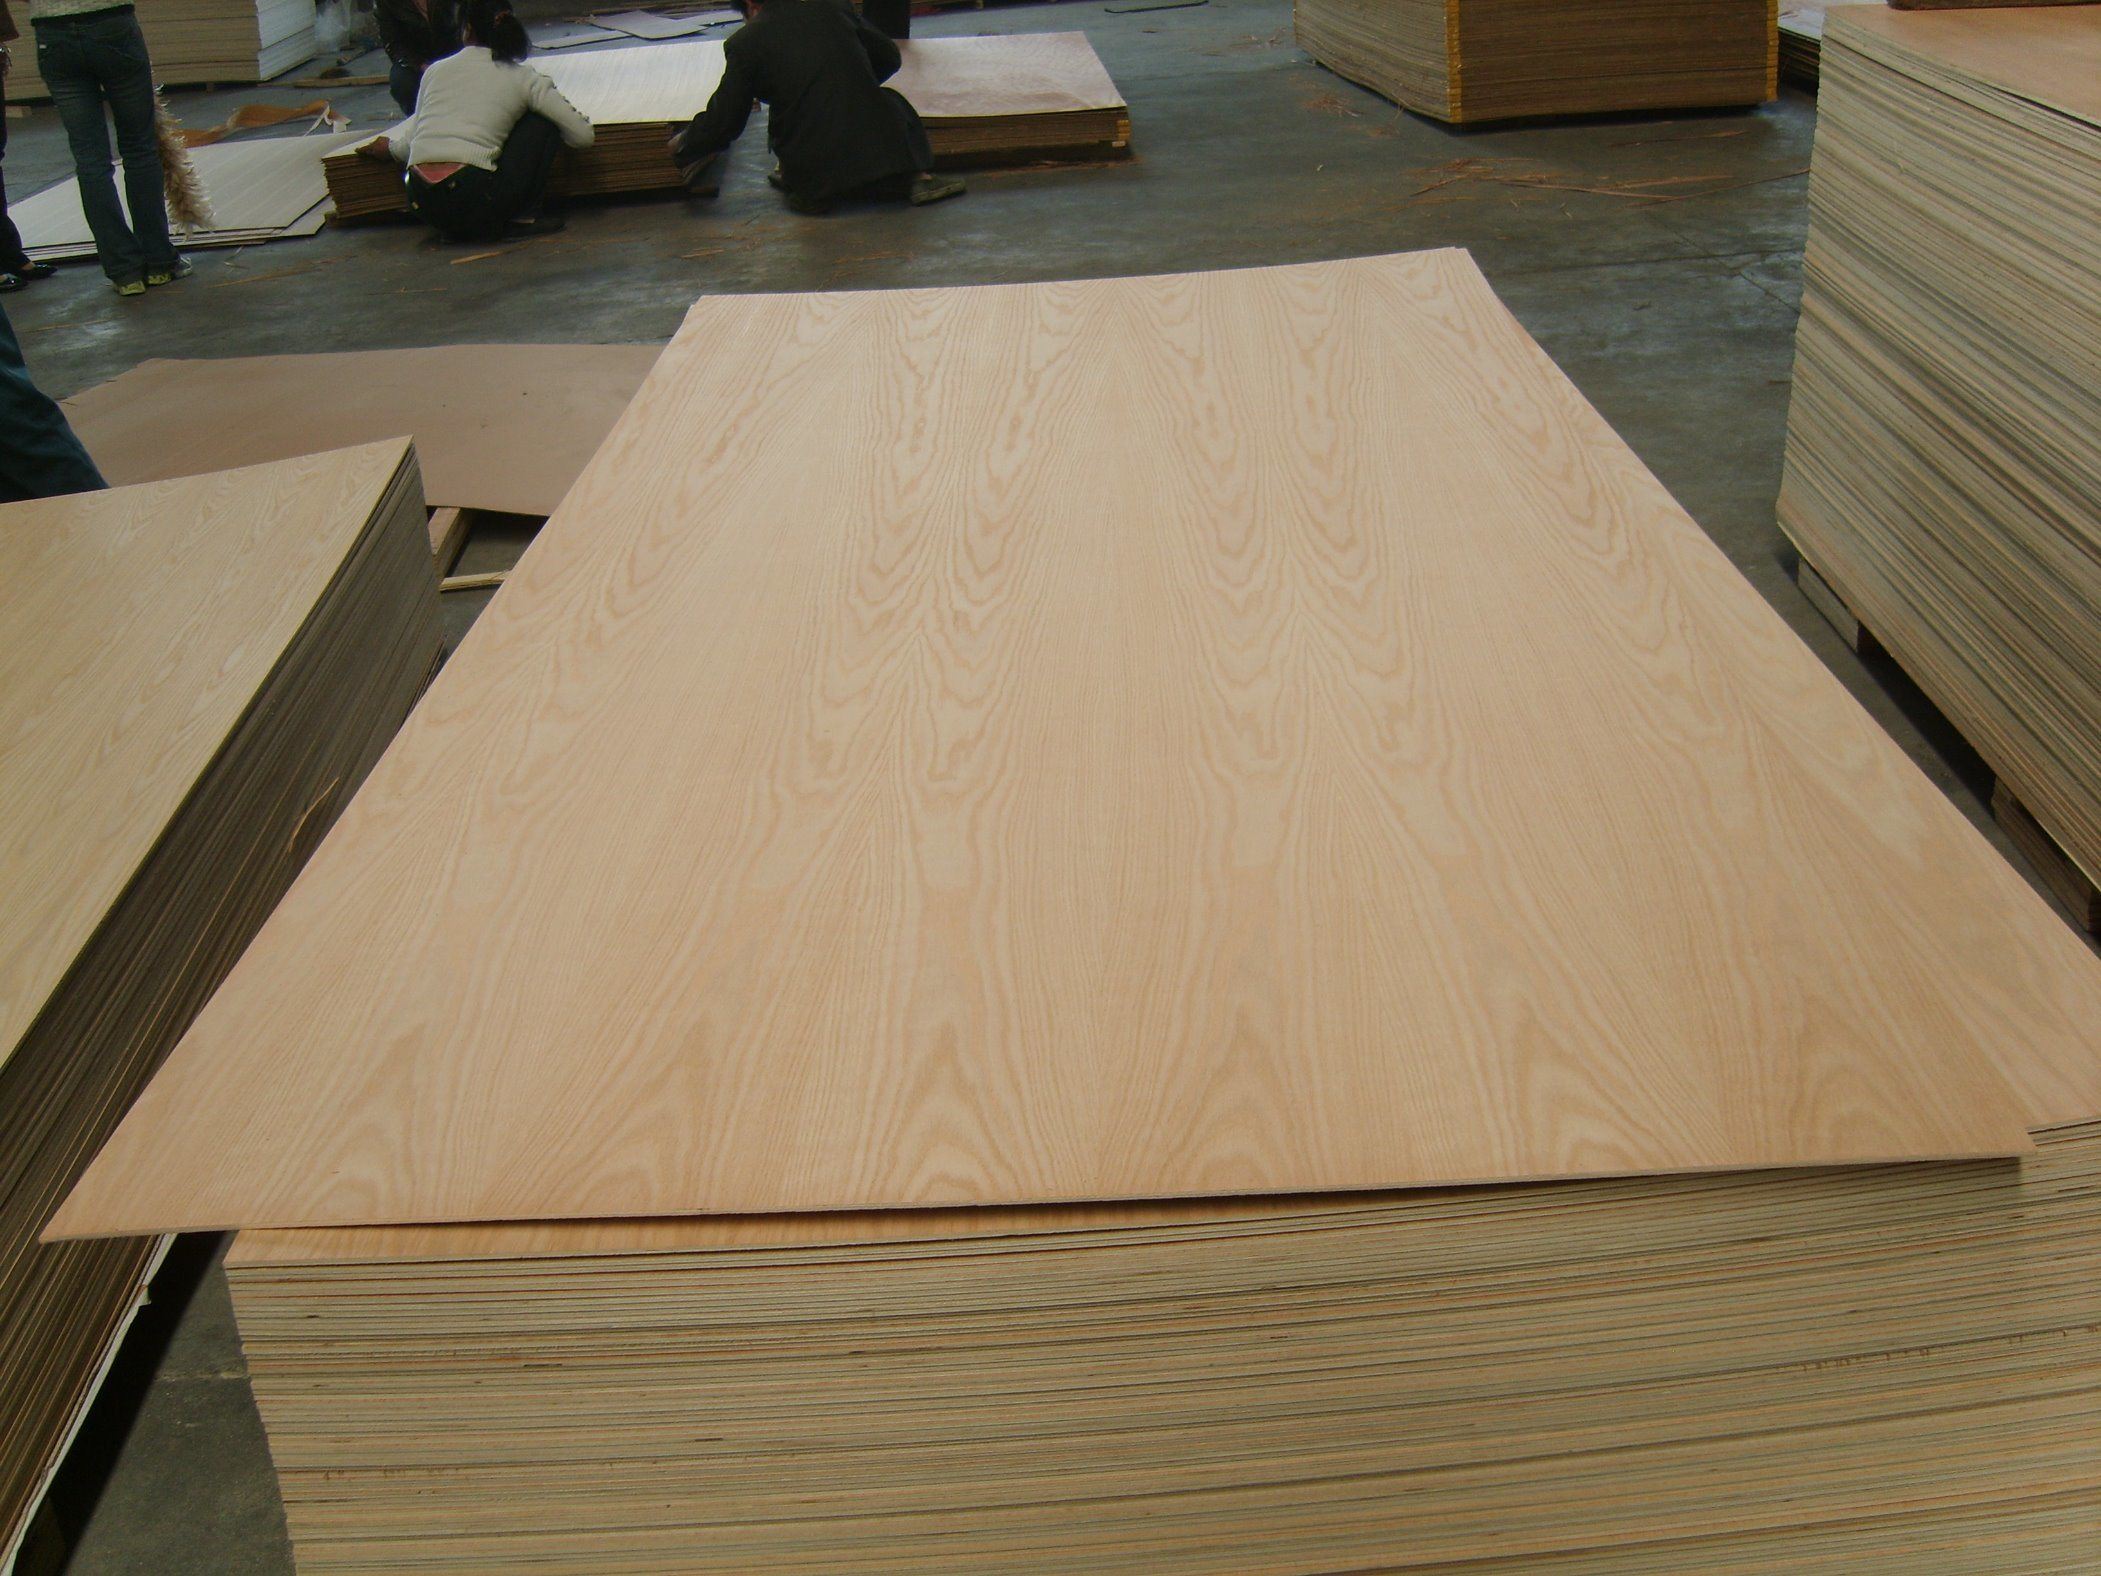 P/S American Red Oak Plywood